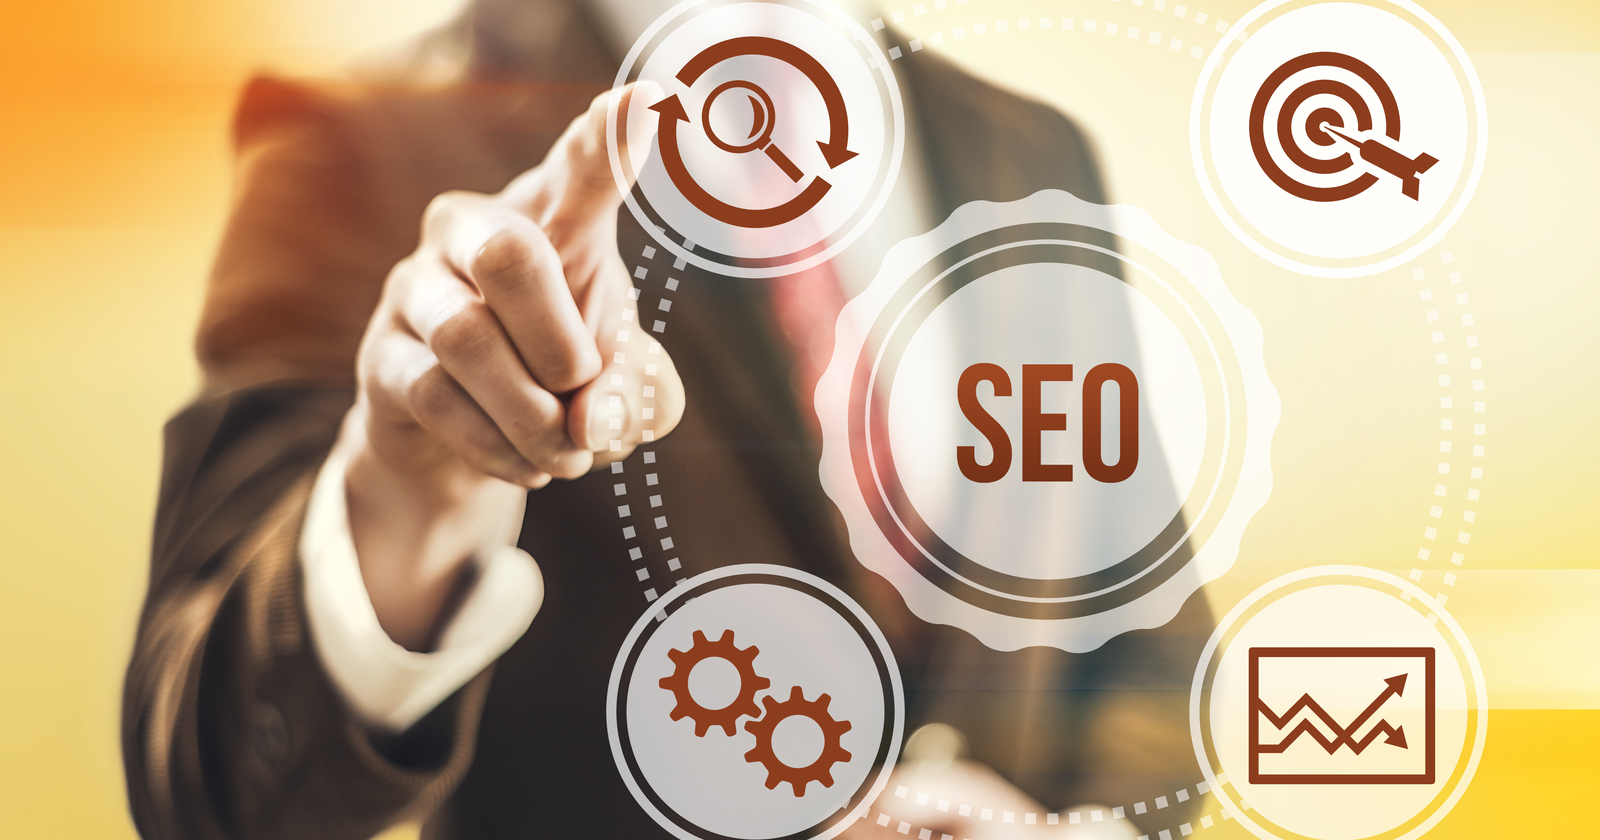 Why There Are So Few Vice Presidents of Search Engine Optimization